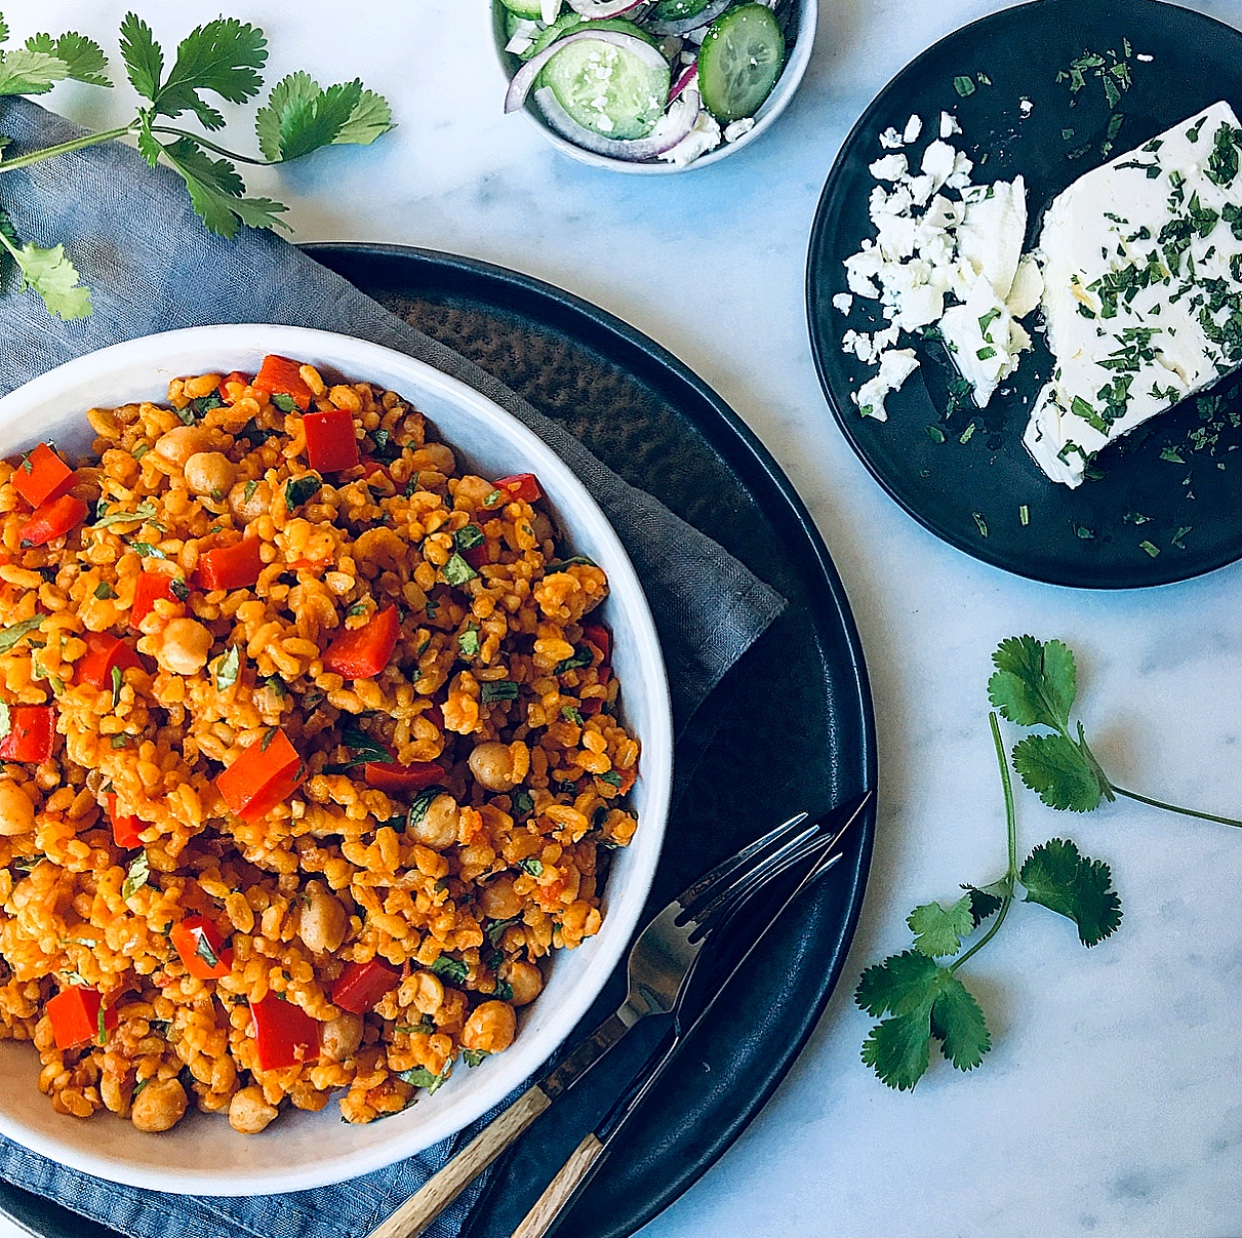 Replace your brown rice or quinoa for Bulgur. This nutty wheat has great flavour and works perfect in salads, with meat or as a side.